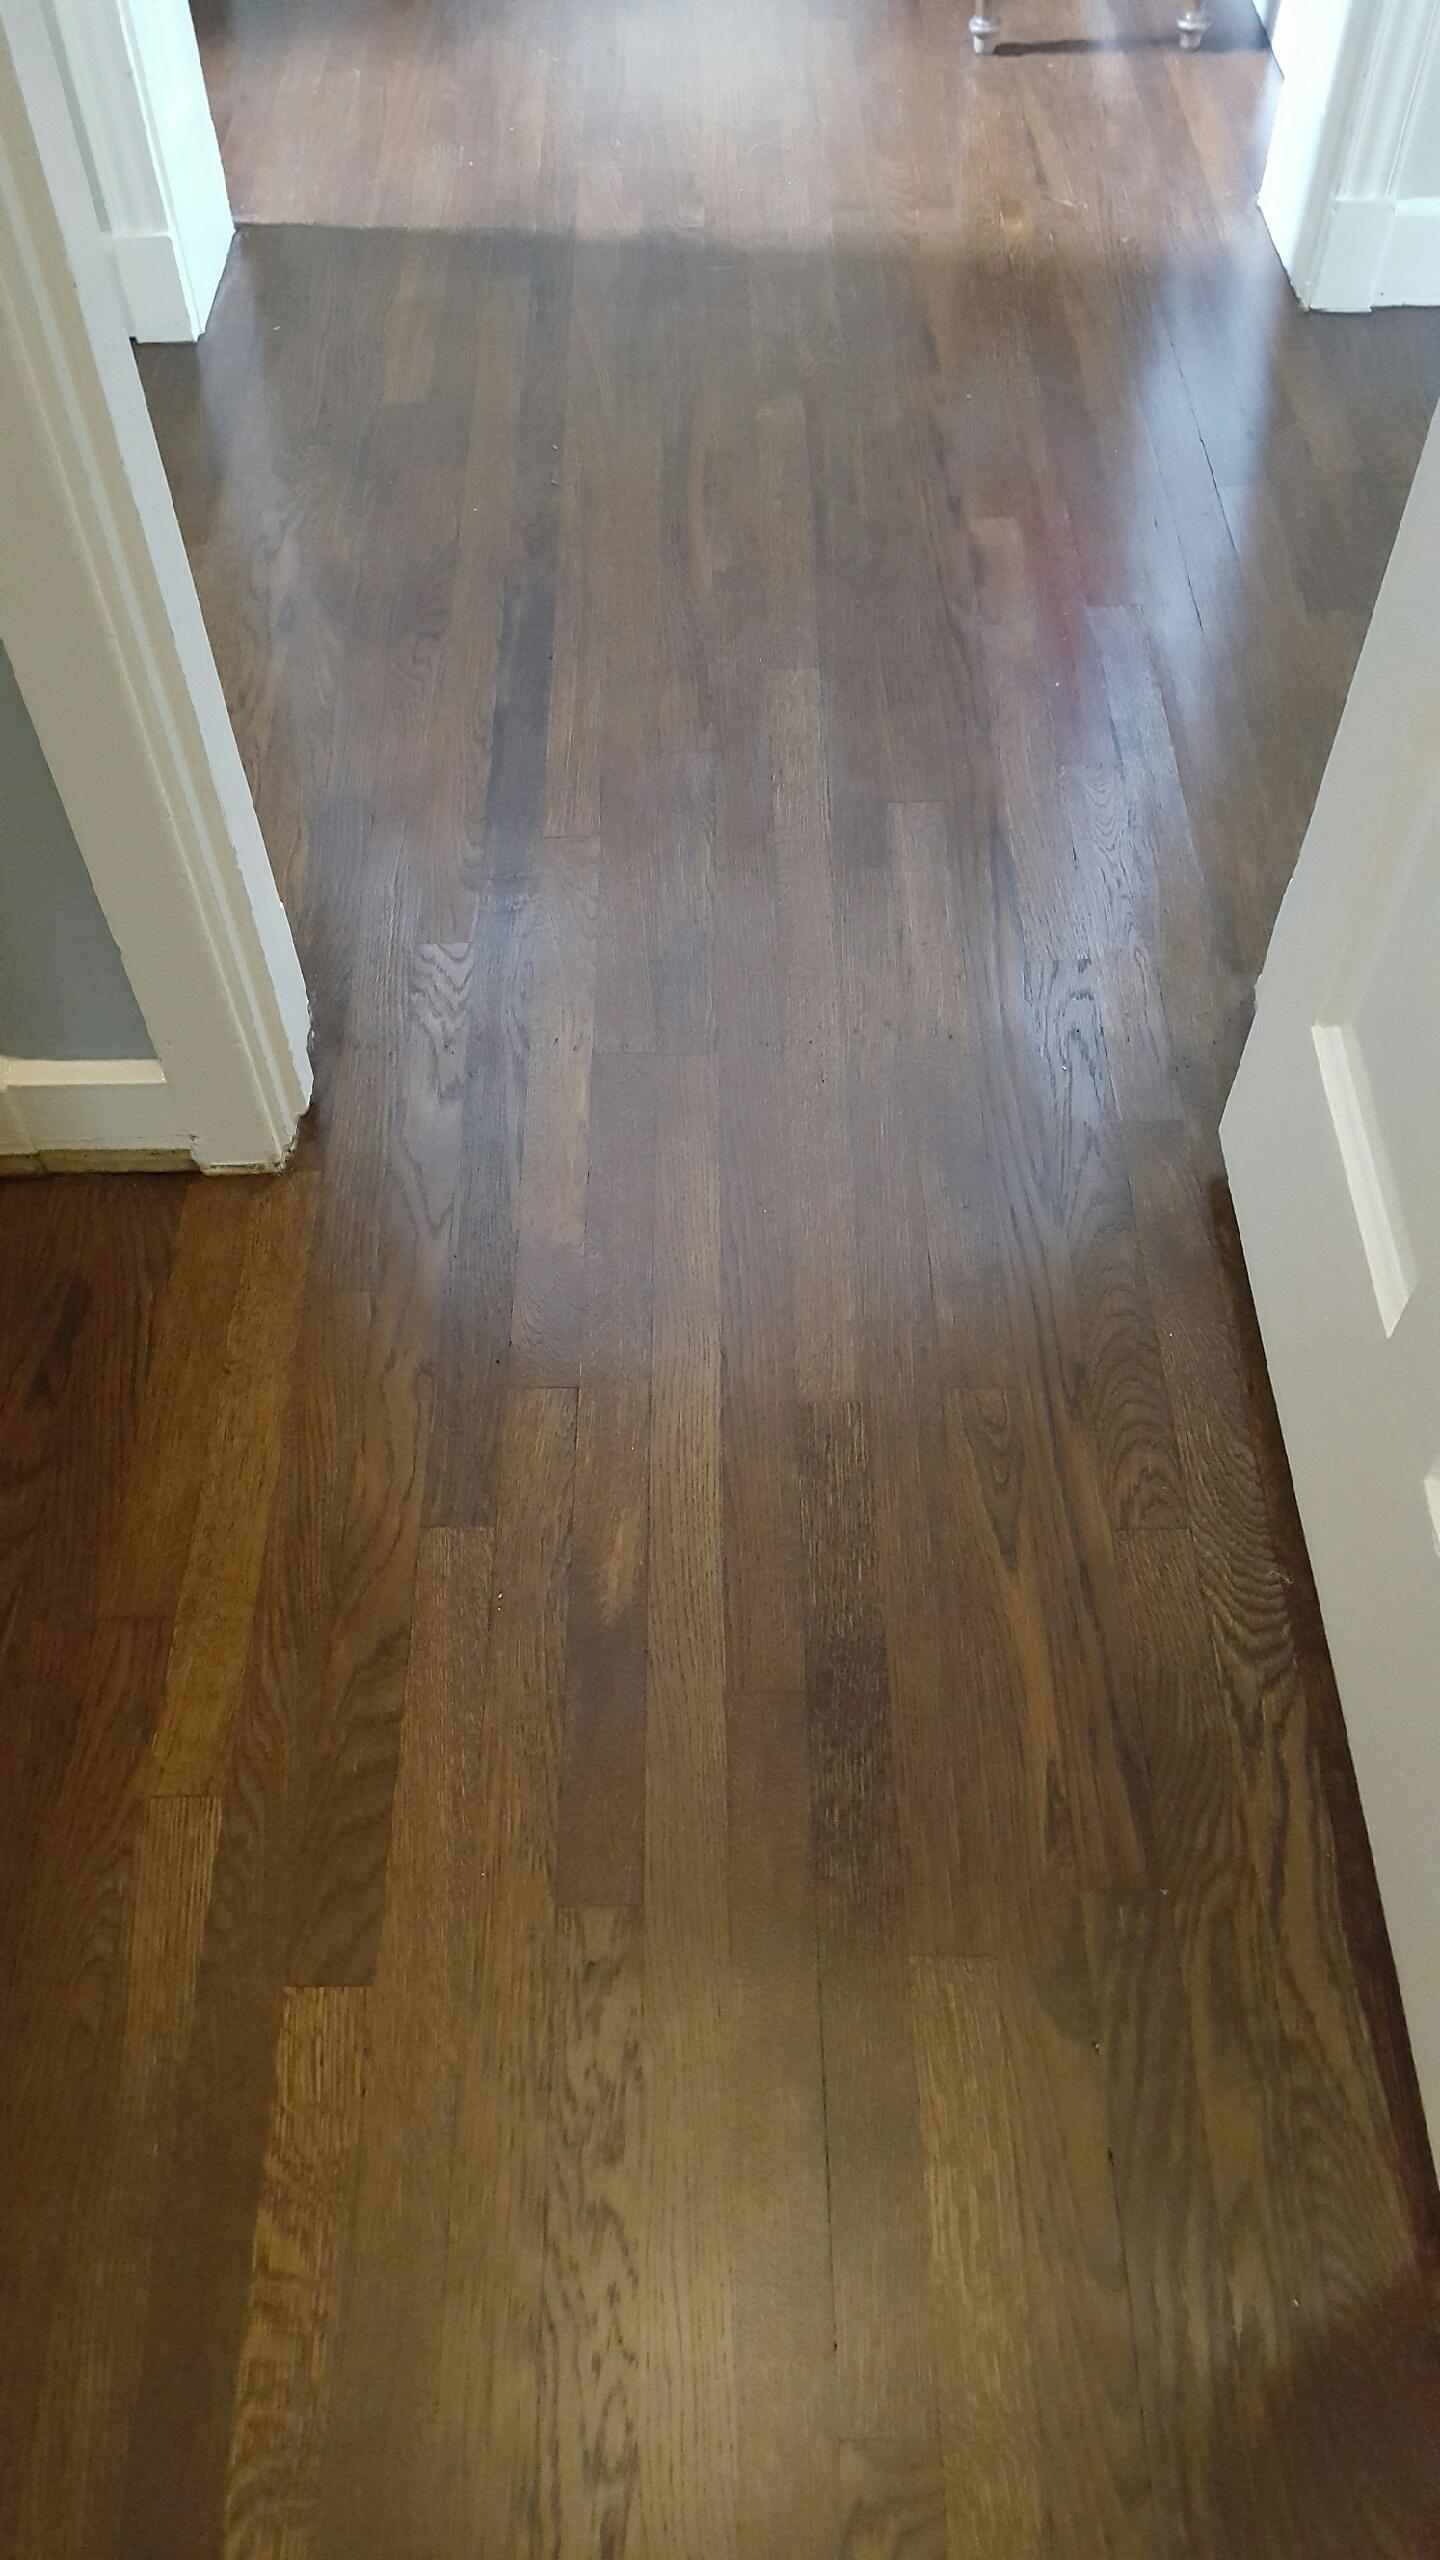 Floors now sanded and stained to match existing floors that were in the entry way.